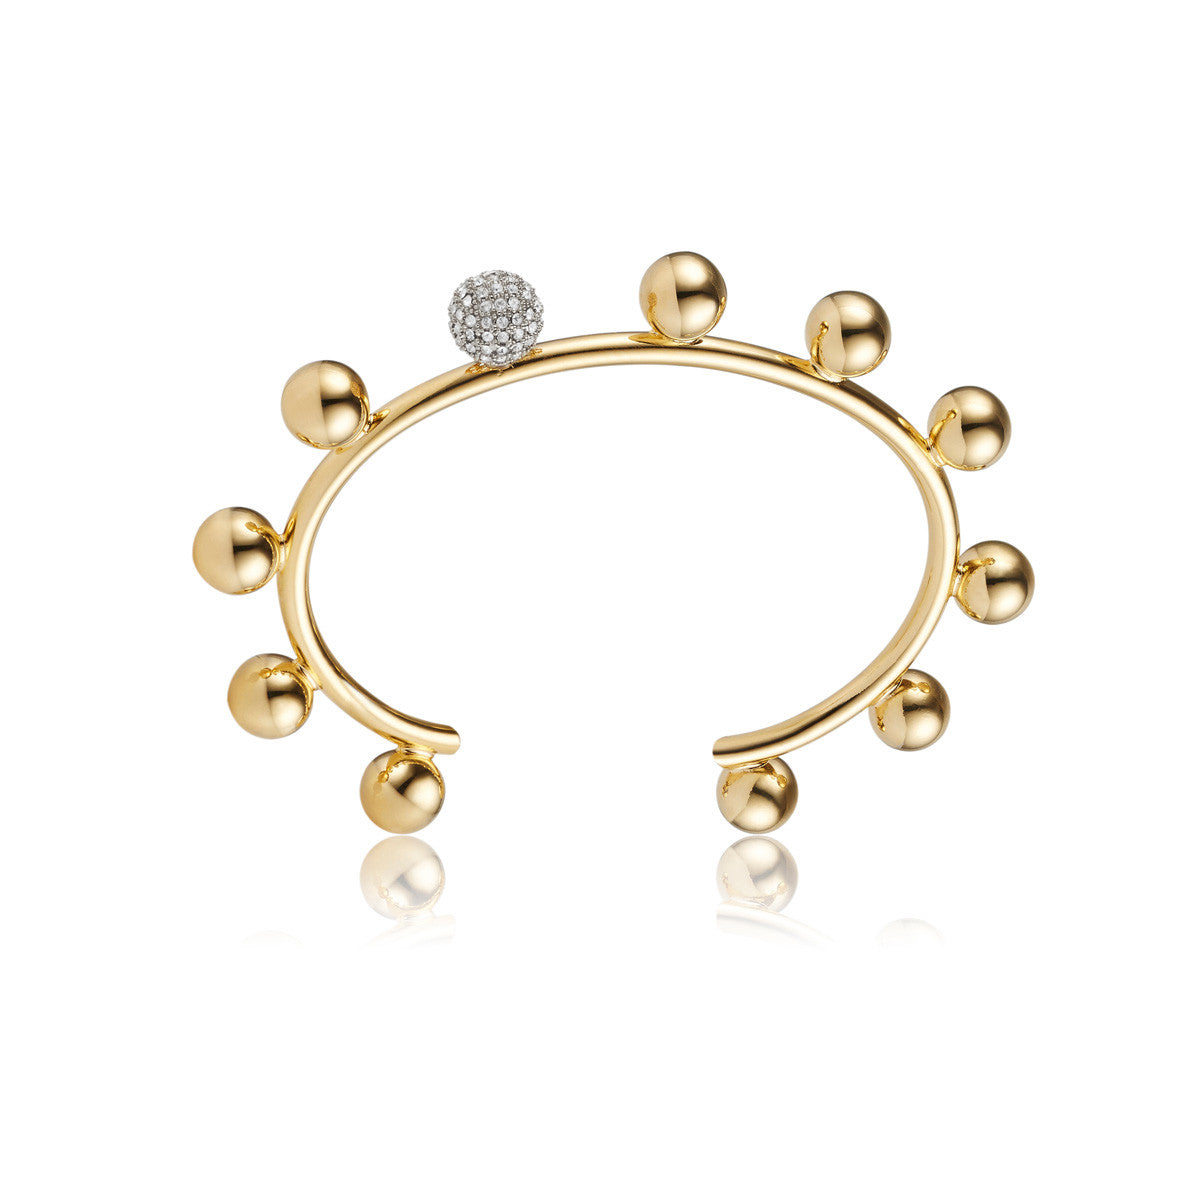 Solid brass, 18K gold plated Luceat bangle topped with gleaming spheres and Swarovski® crystal pavè detailing – front